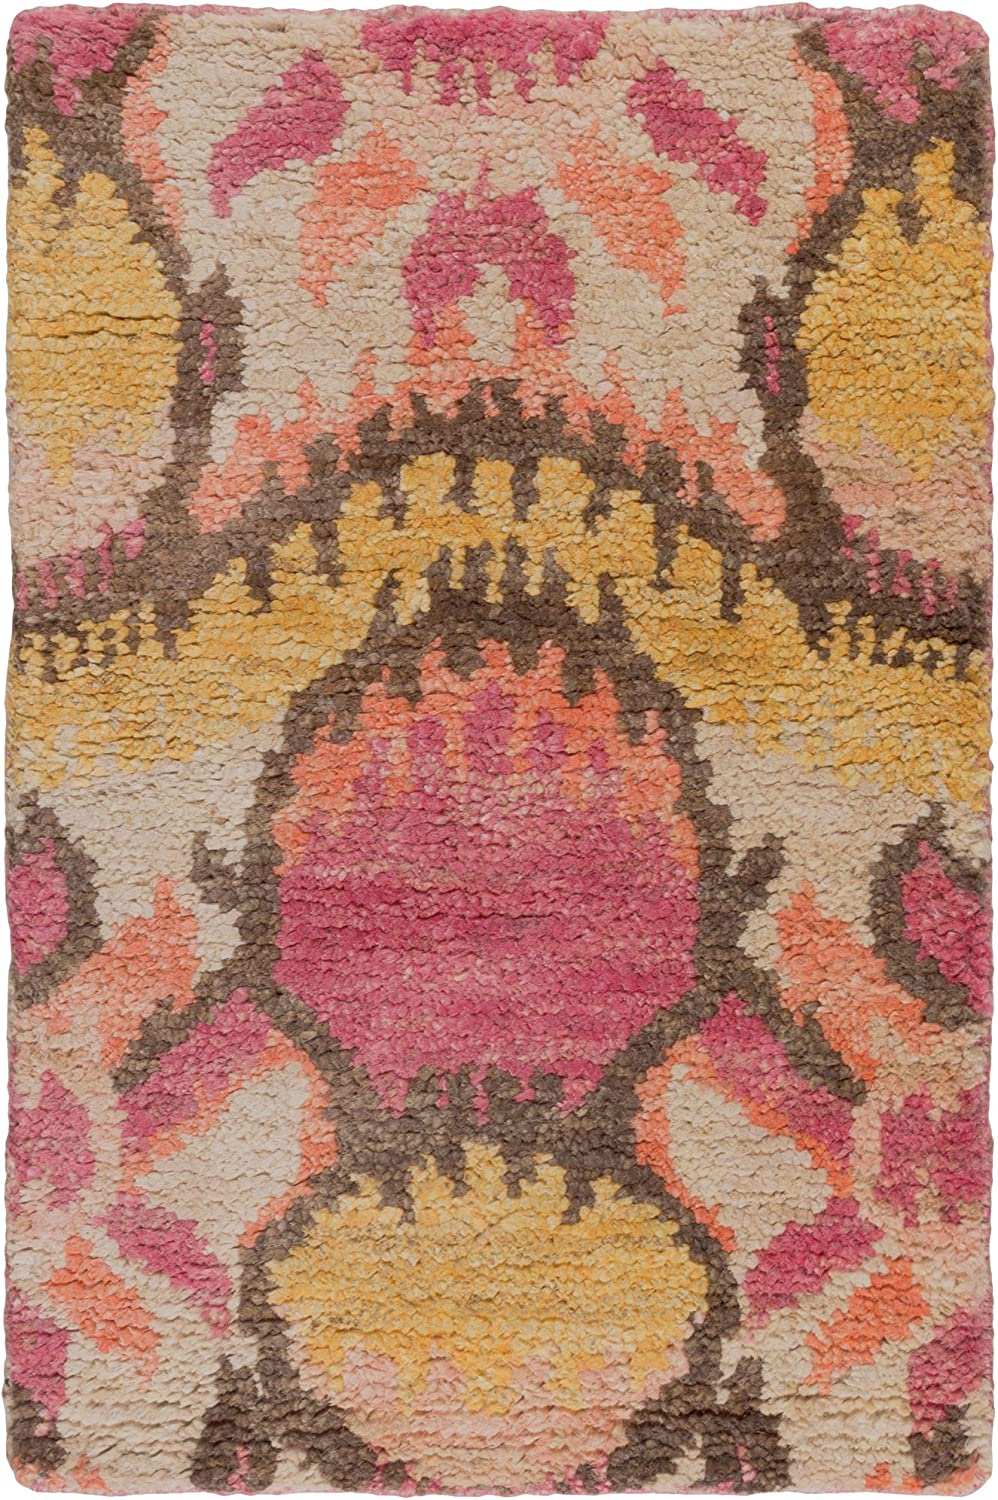 B00LTS13IK Surya Scarborough Hand Knotted Natural Fiber Accent Rug, 2-Feet by 3-Feet 91K9Kx2qVeL.SL1500_